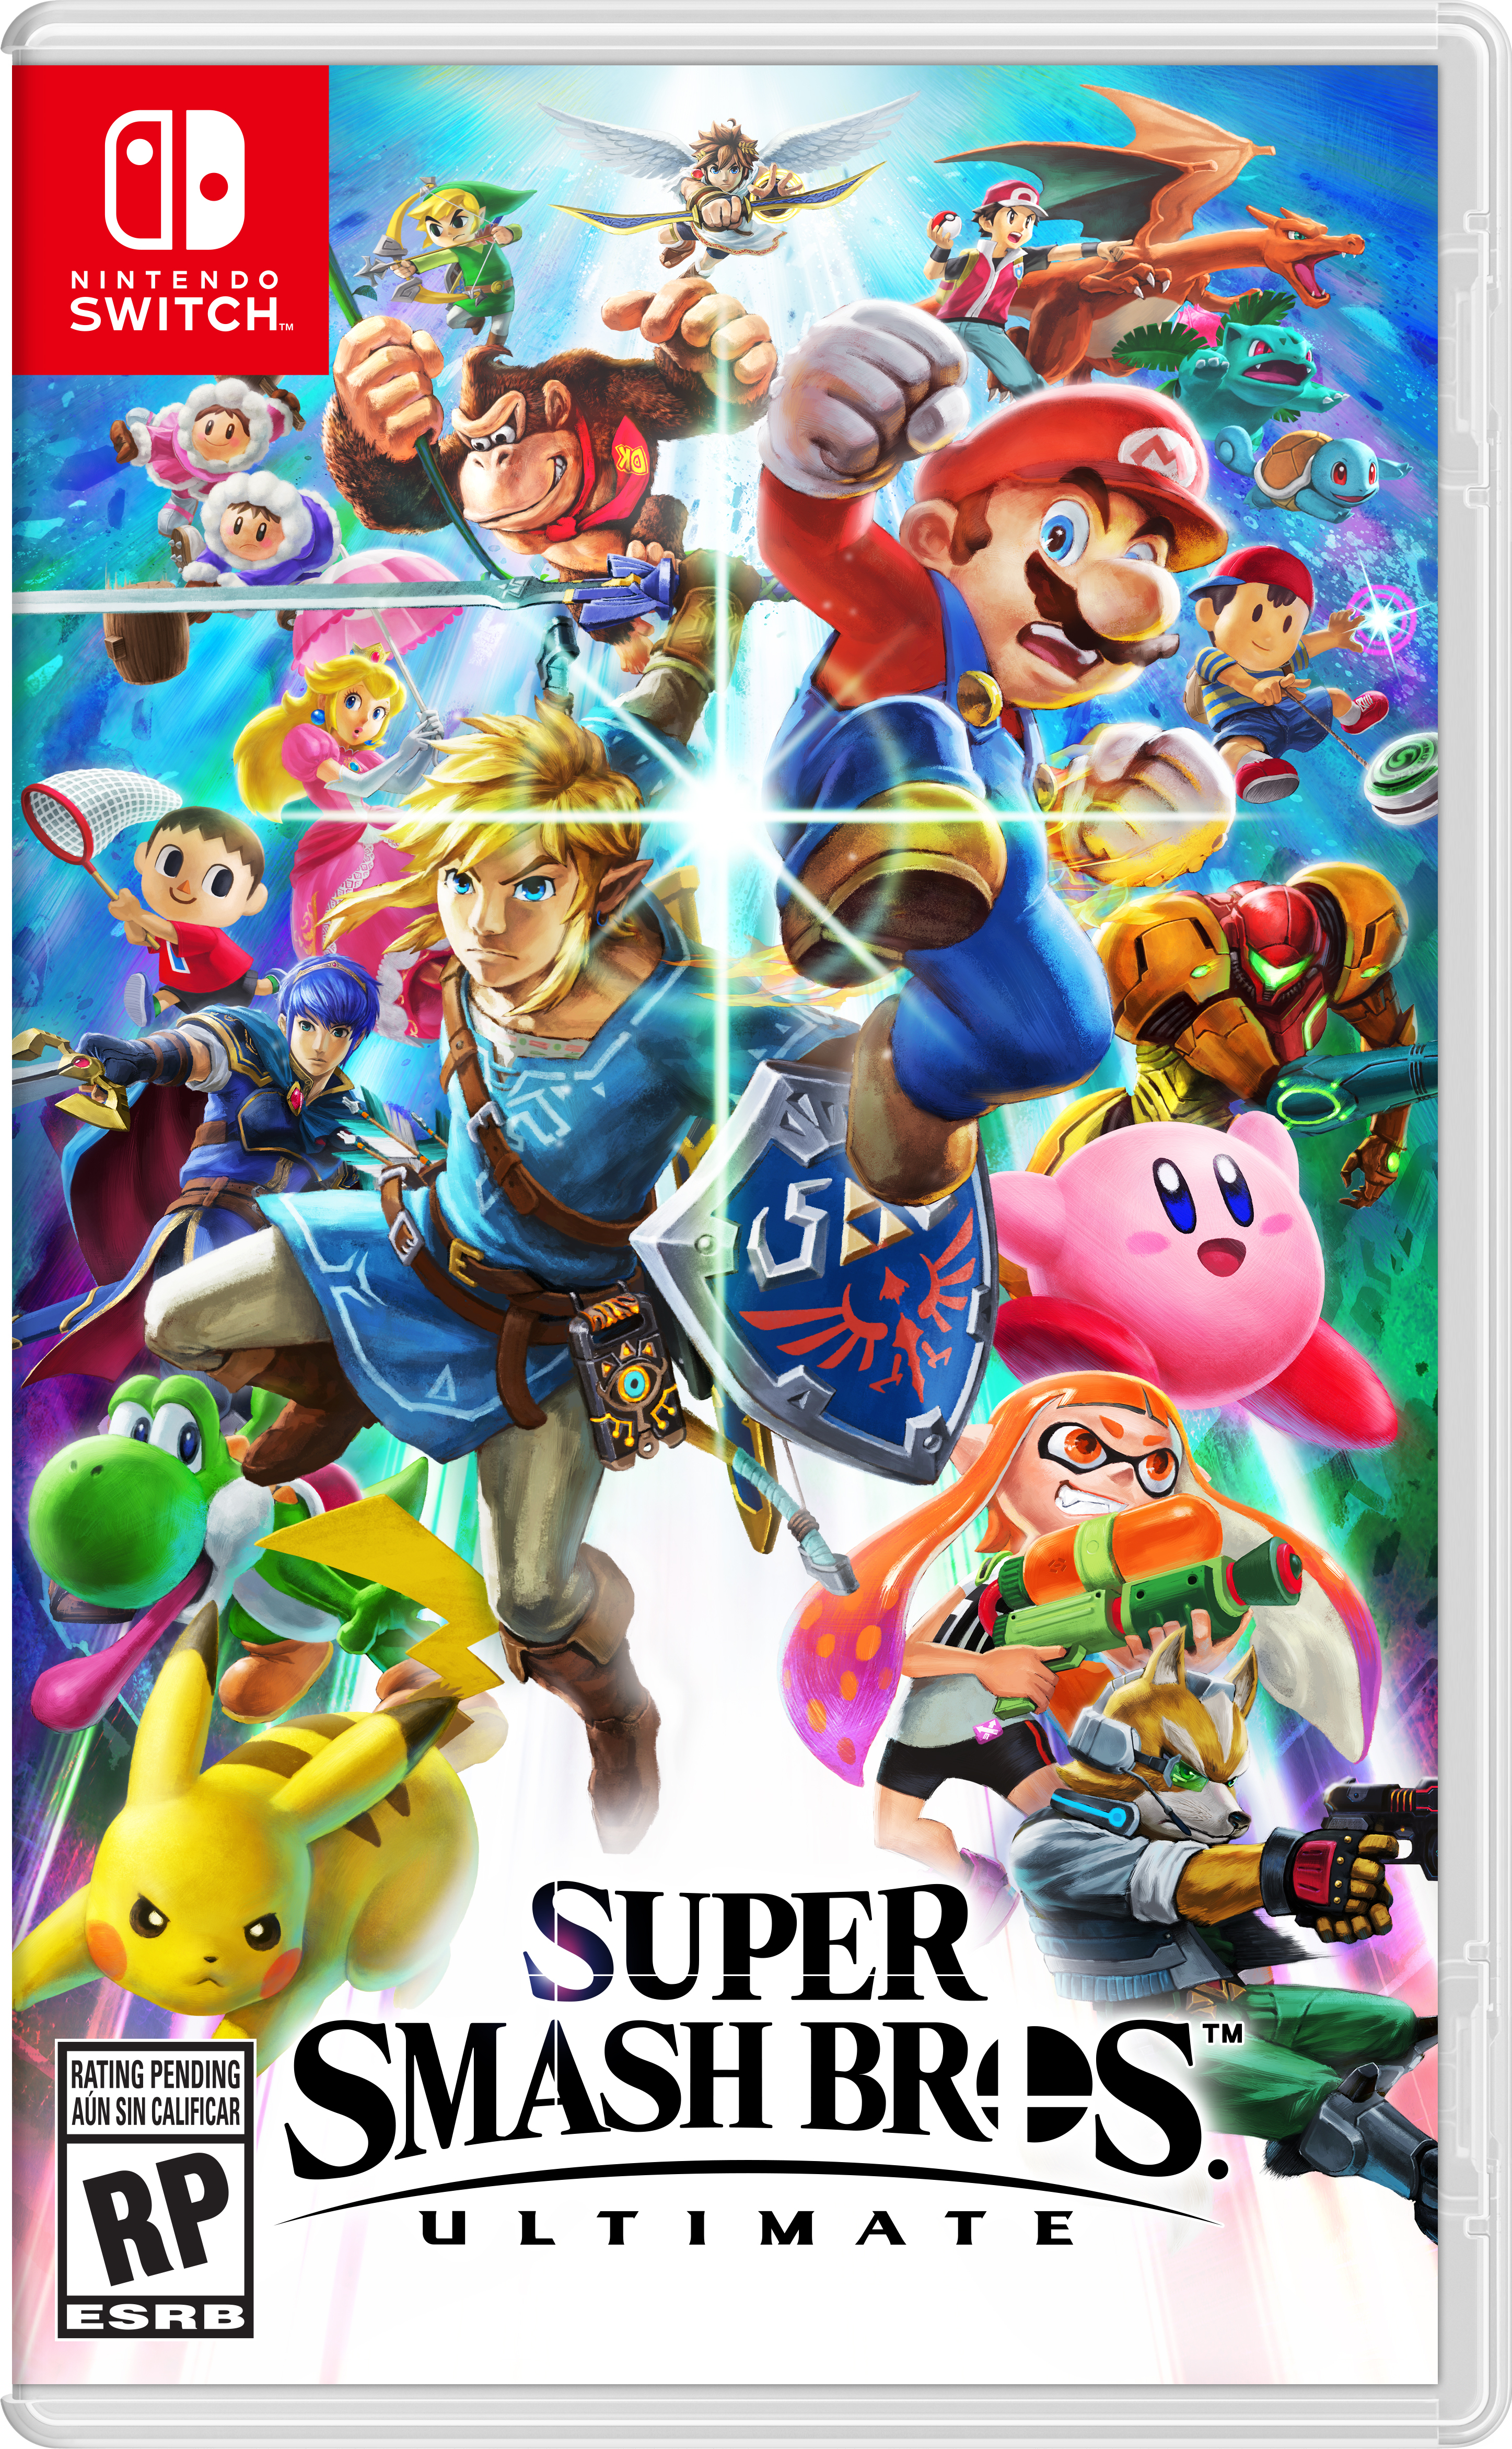 Nintendo Smashes E3 With 2018 Lineup Details About Super Smash Bros Ultimate Business Wire